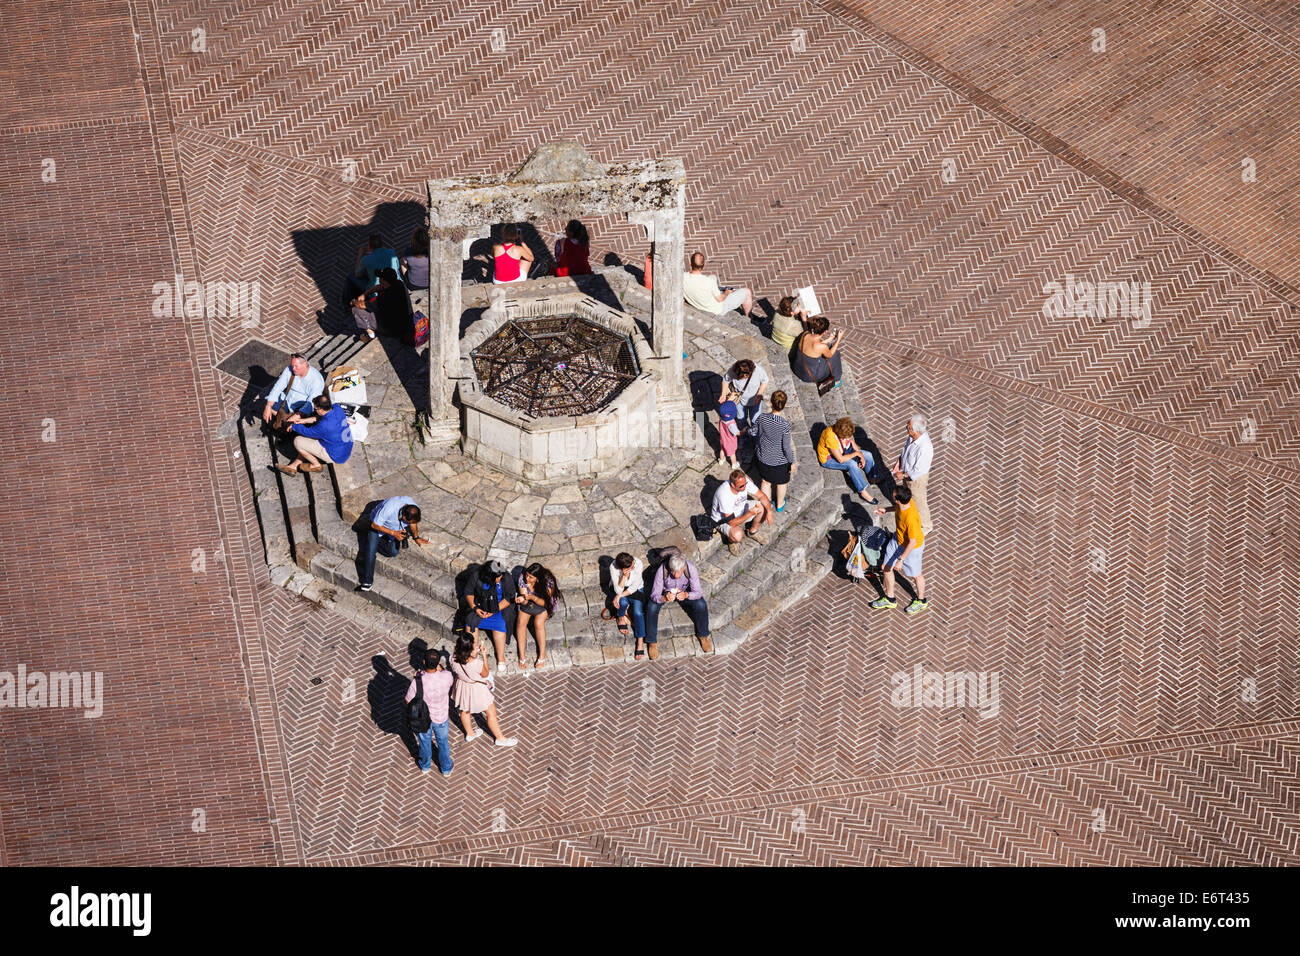 Aerial View Of People Sitting Around The Medieval Well In Piazza Della Cisterna San Gimignano Tuscany Italy